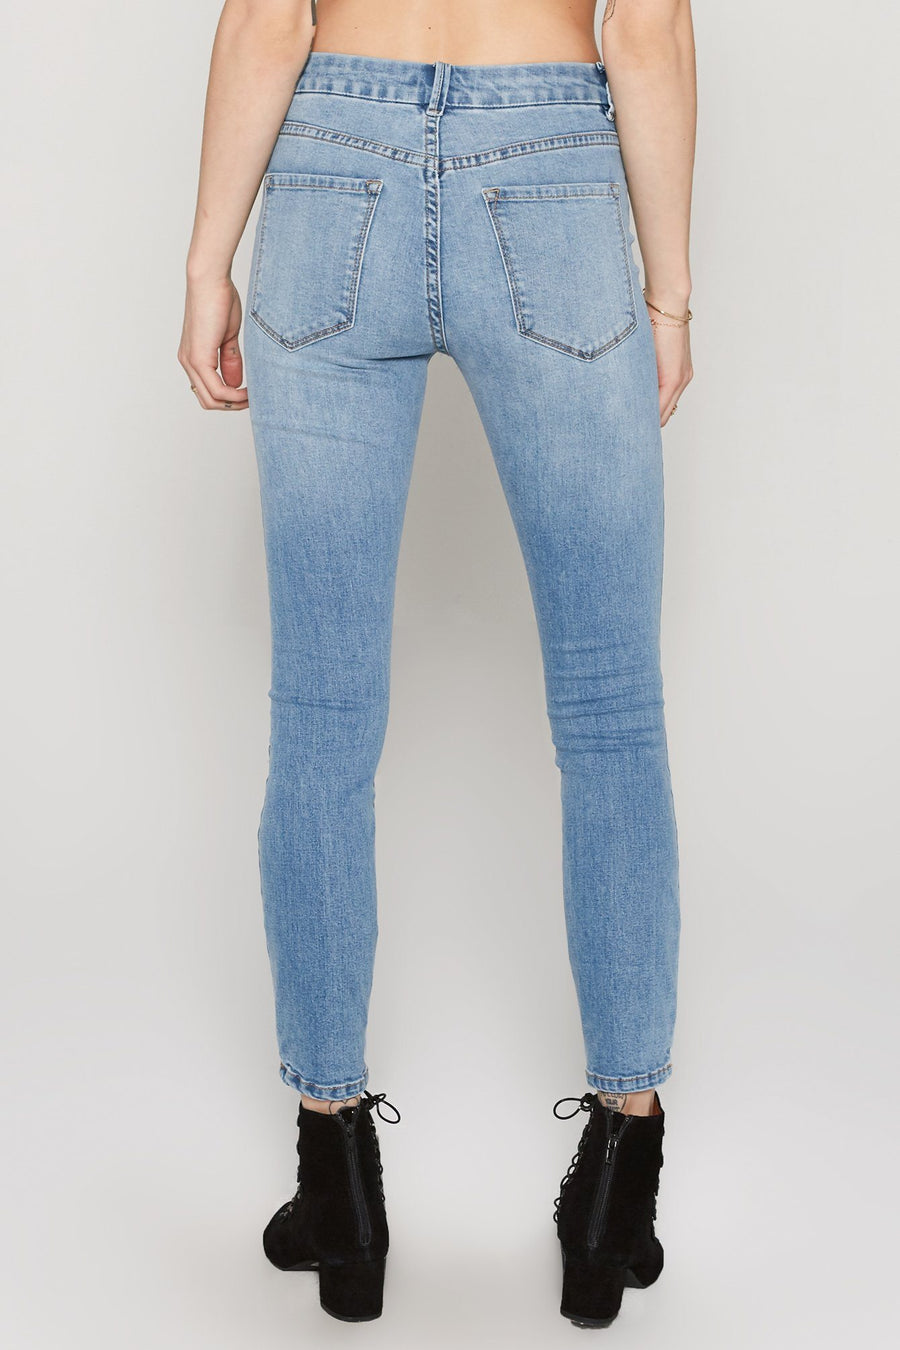 Soho Pant - Wash Blue